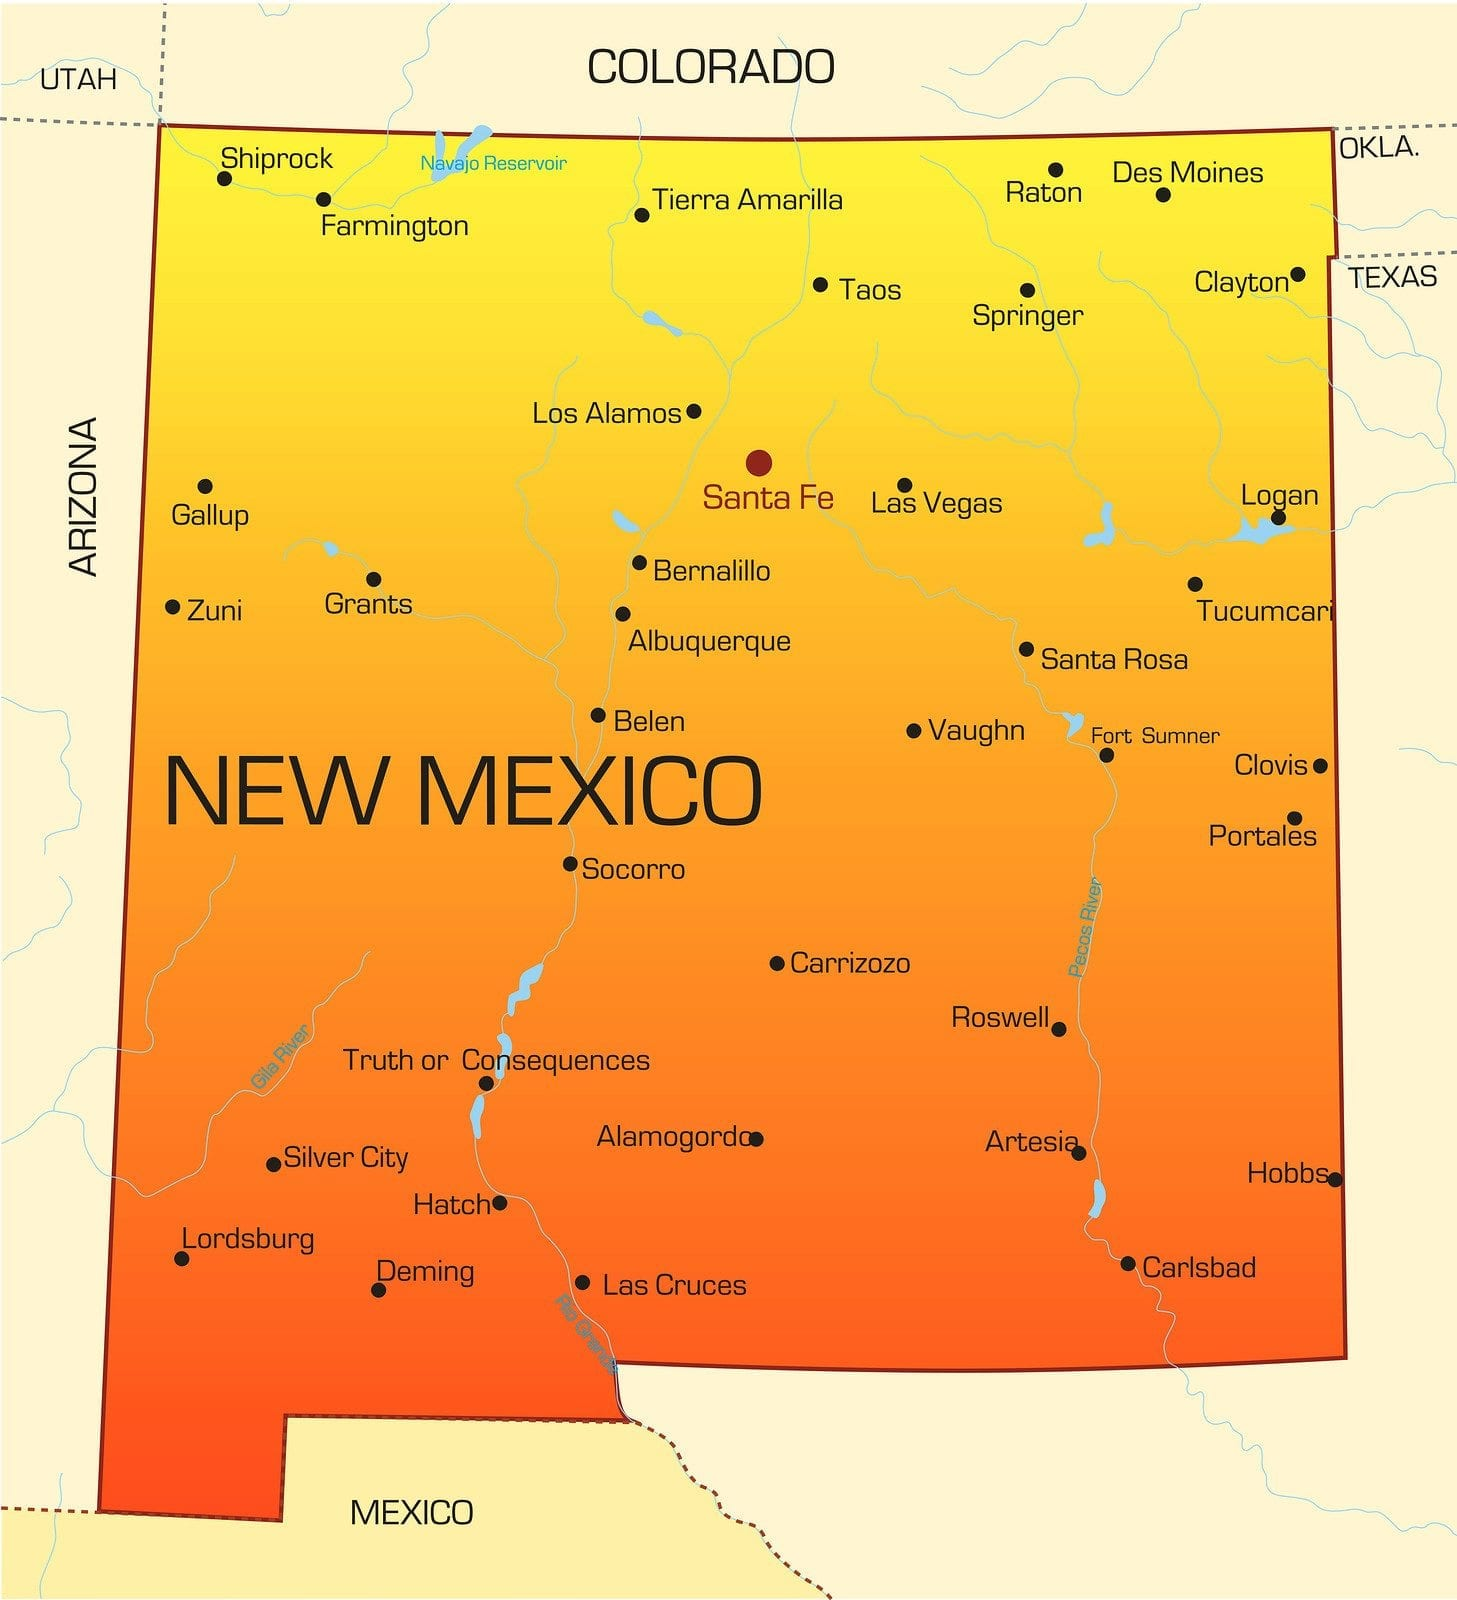 New Mexico LPN Requirements and Training Programs